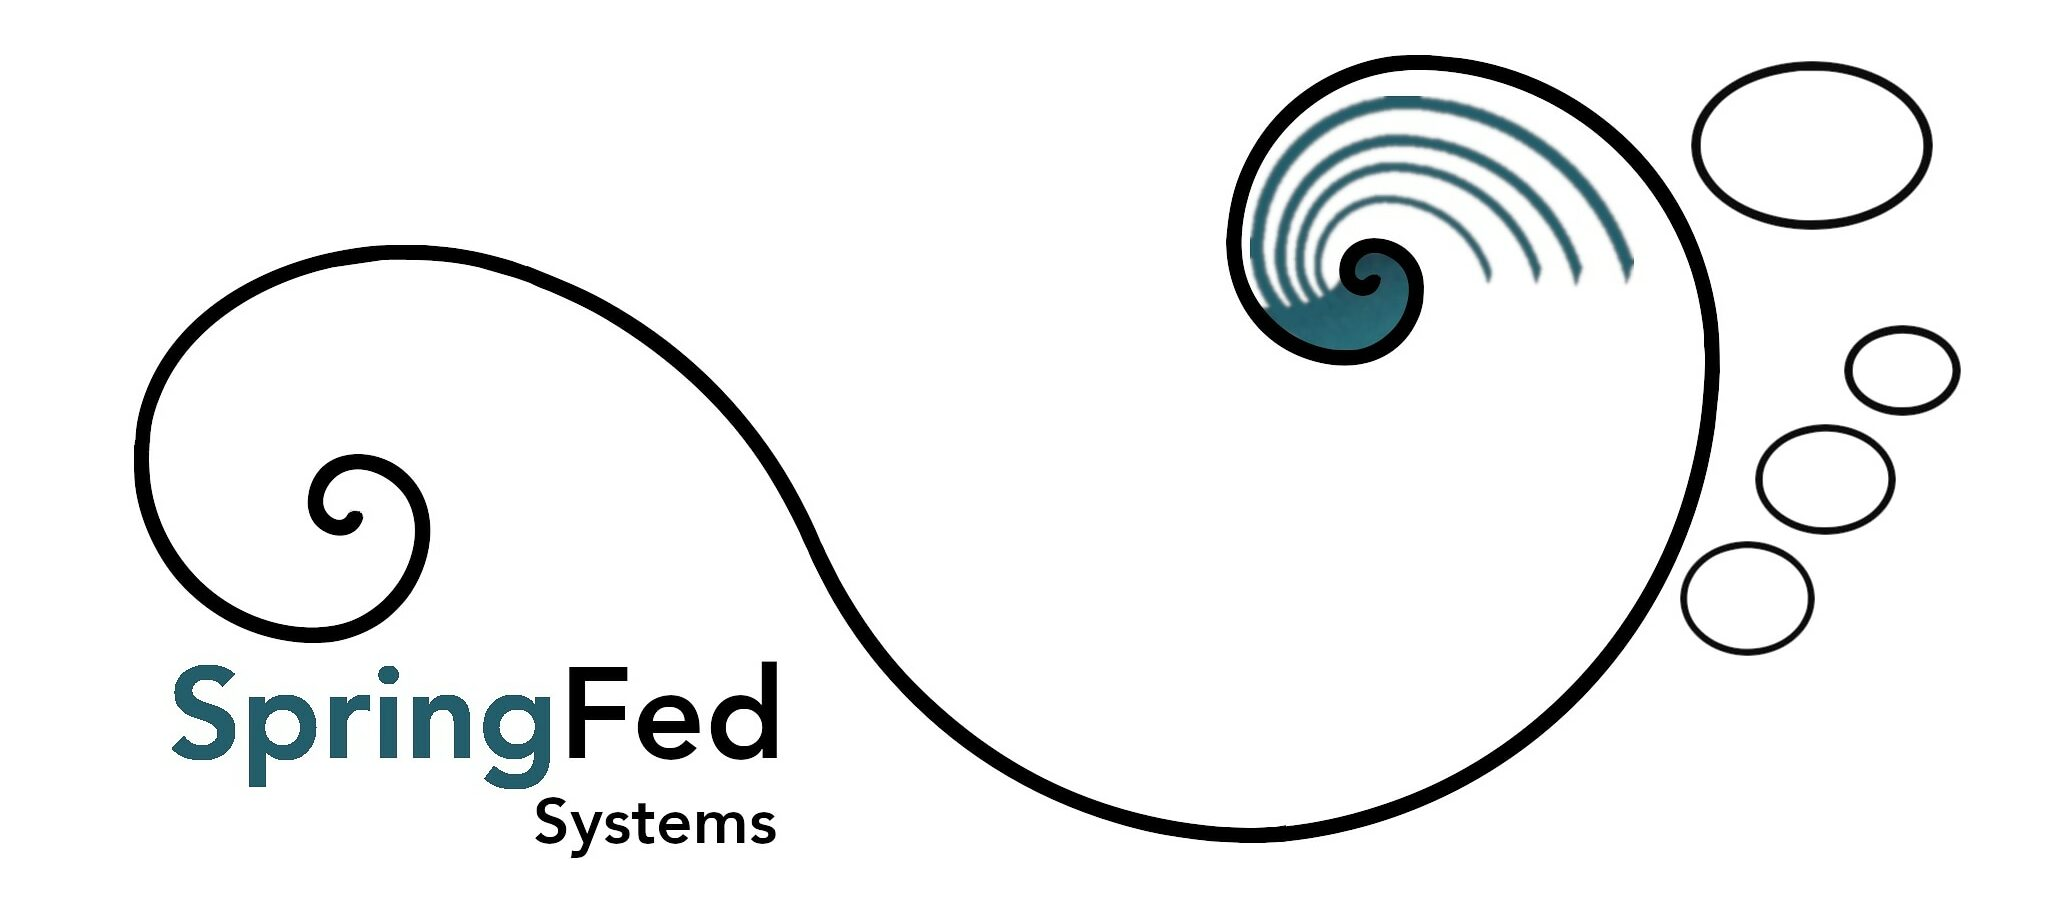 SpringFed Systems